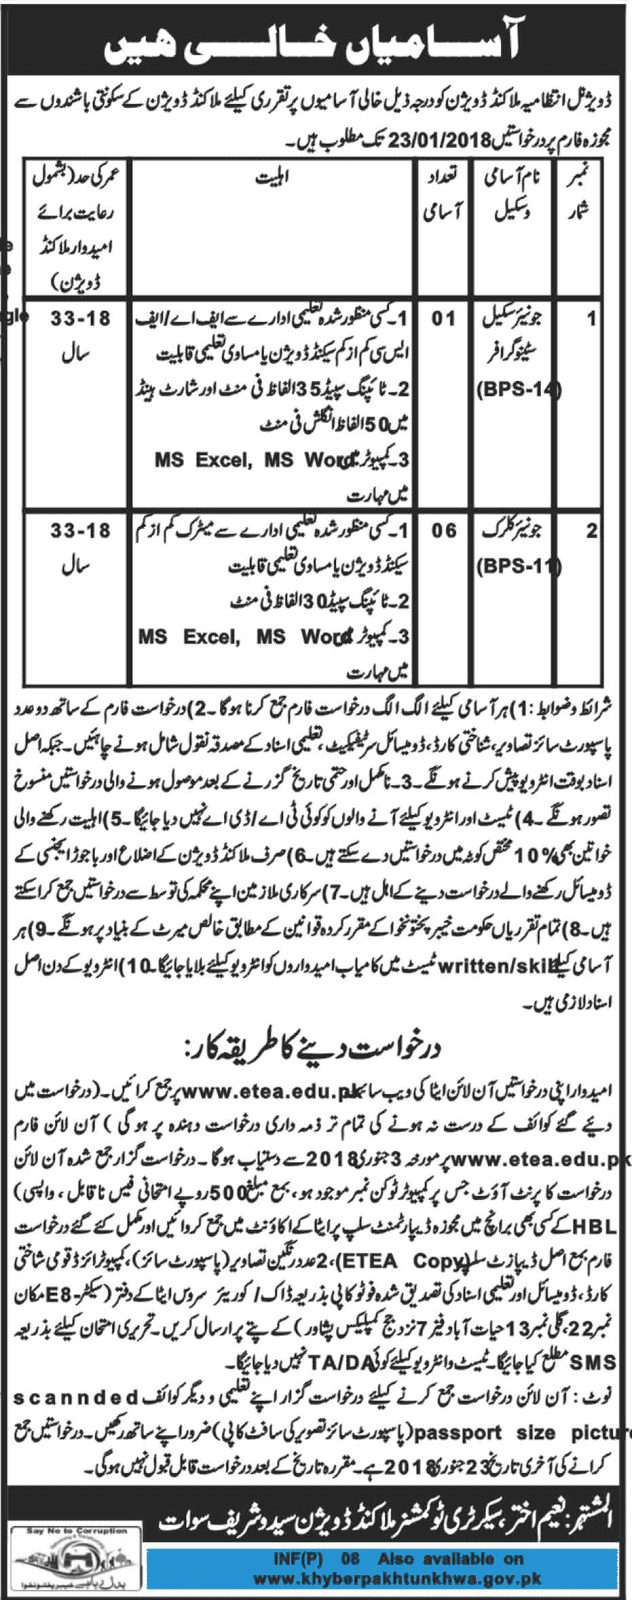 Jobs In Malakand Division Swat